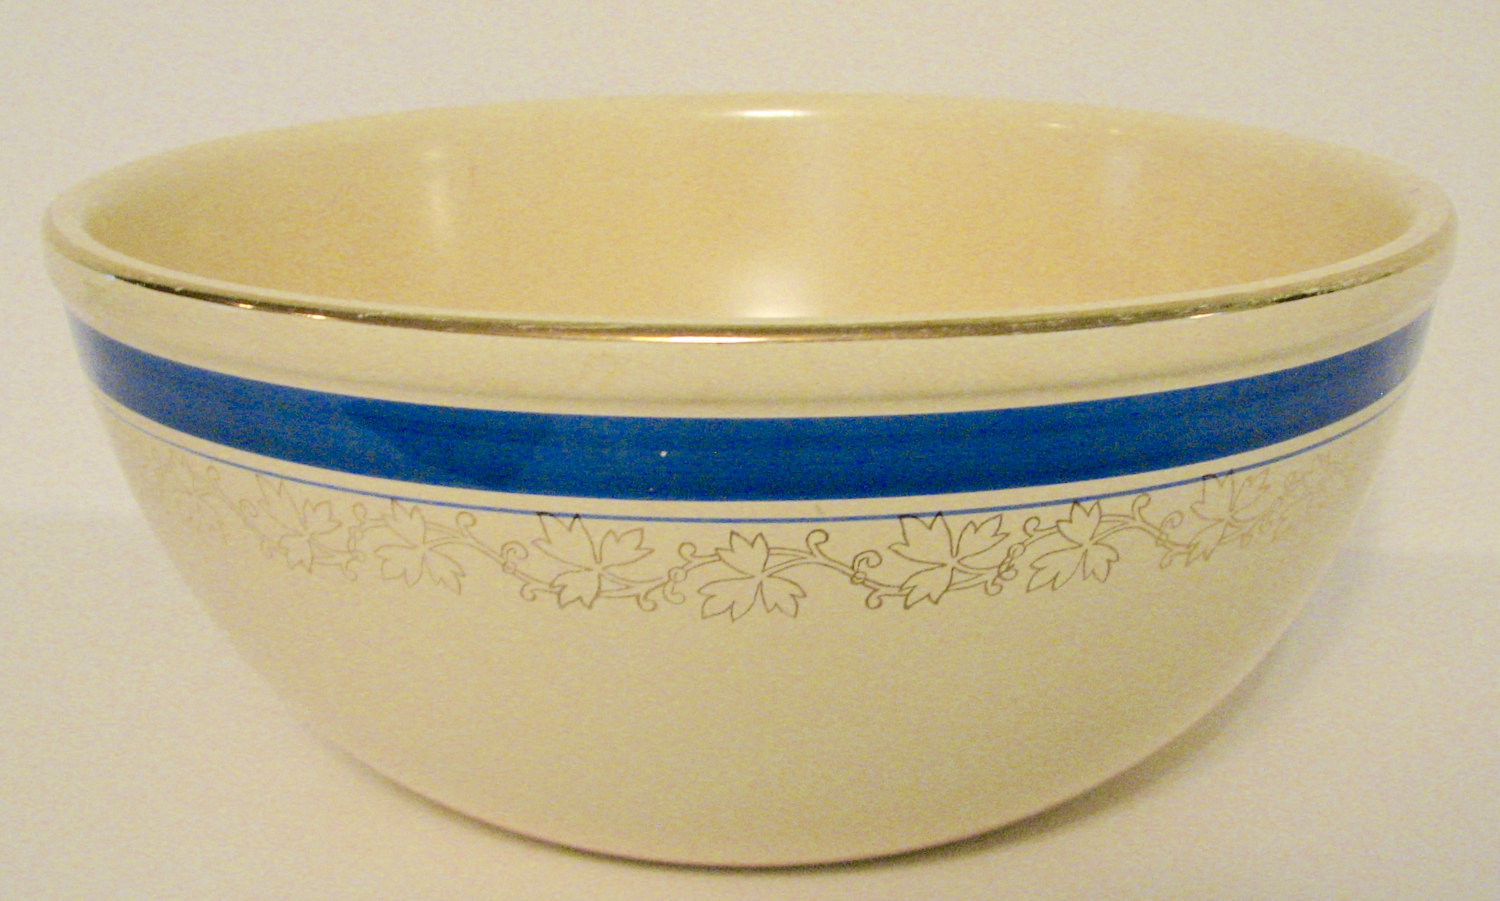 Vintage Mixing Bowl Blue Band Kitchen Craft Jewel Tea Country